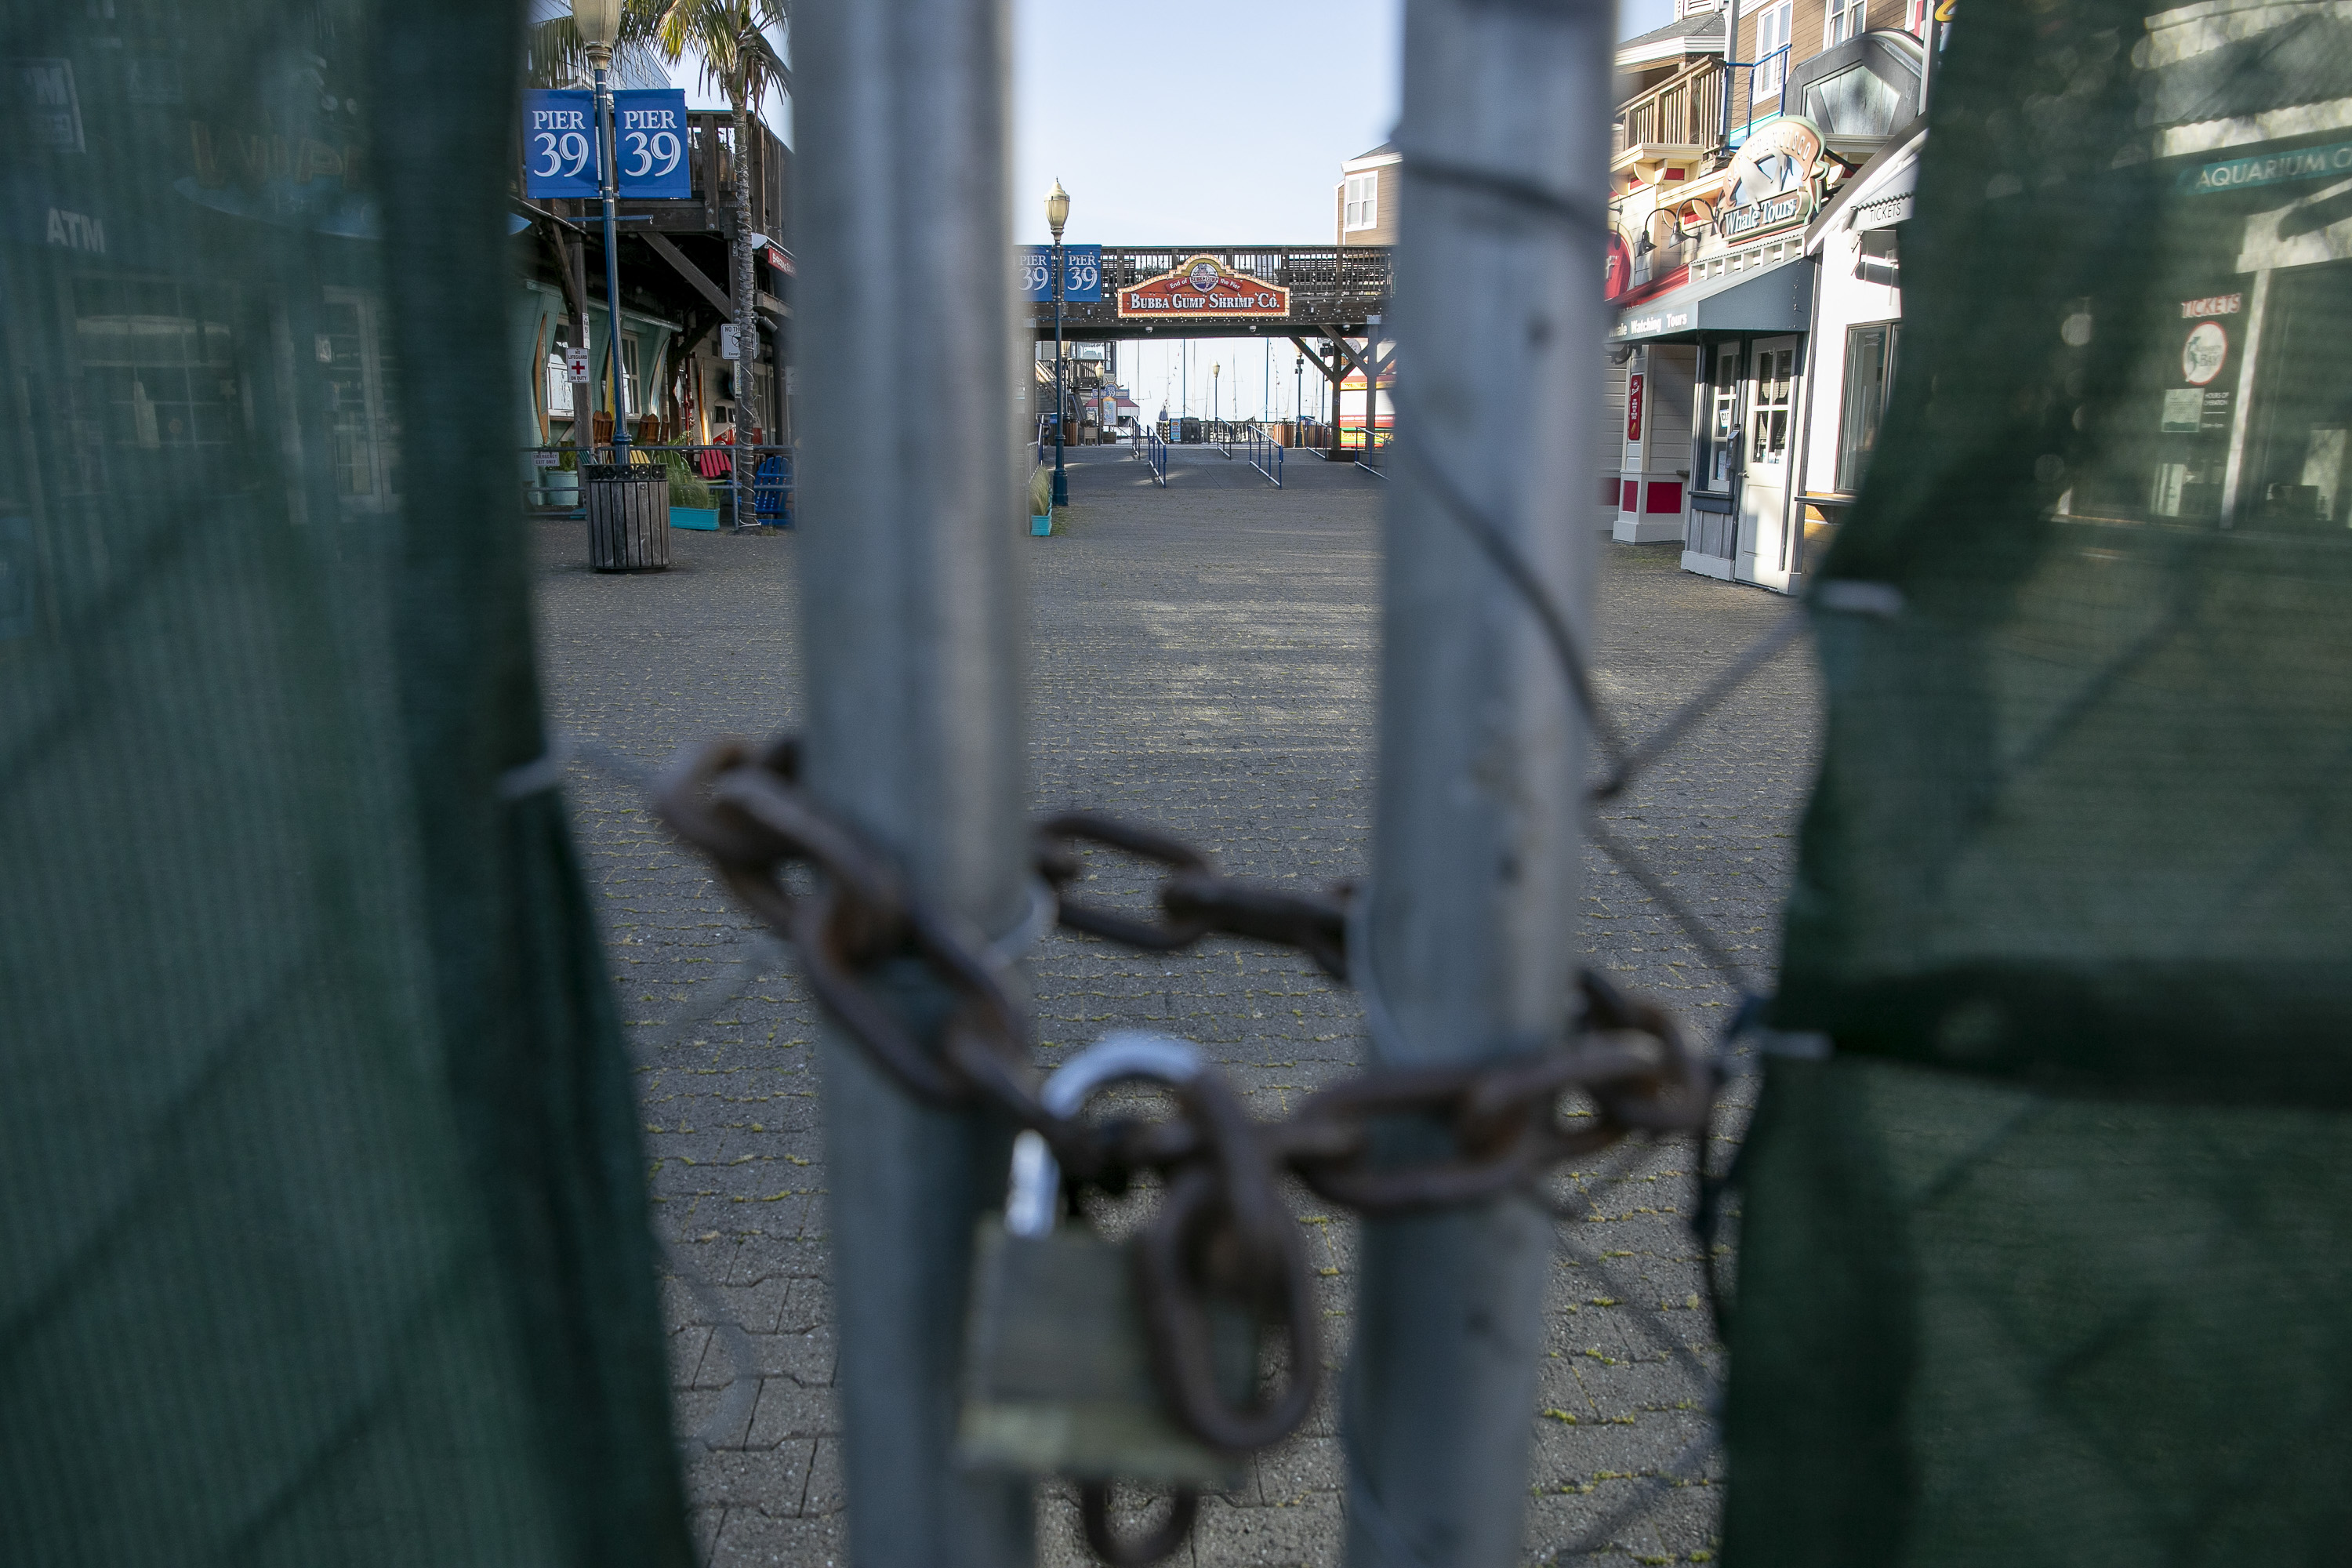 The padlocked entrance to pier 39 at Fisherman's Wharf in San Francisco remains closed on May 7, 2020. Photo by Anne Wernikoff for CalMatters